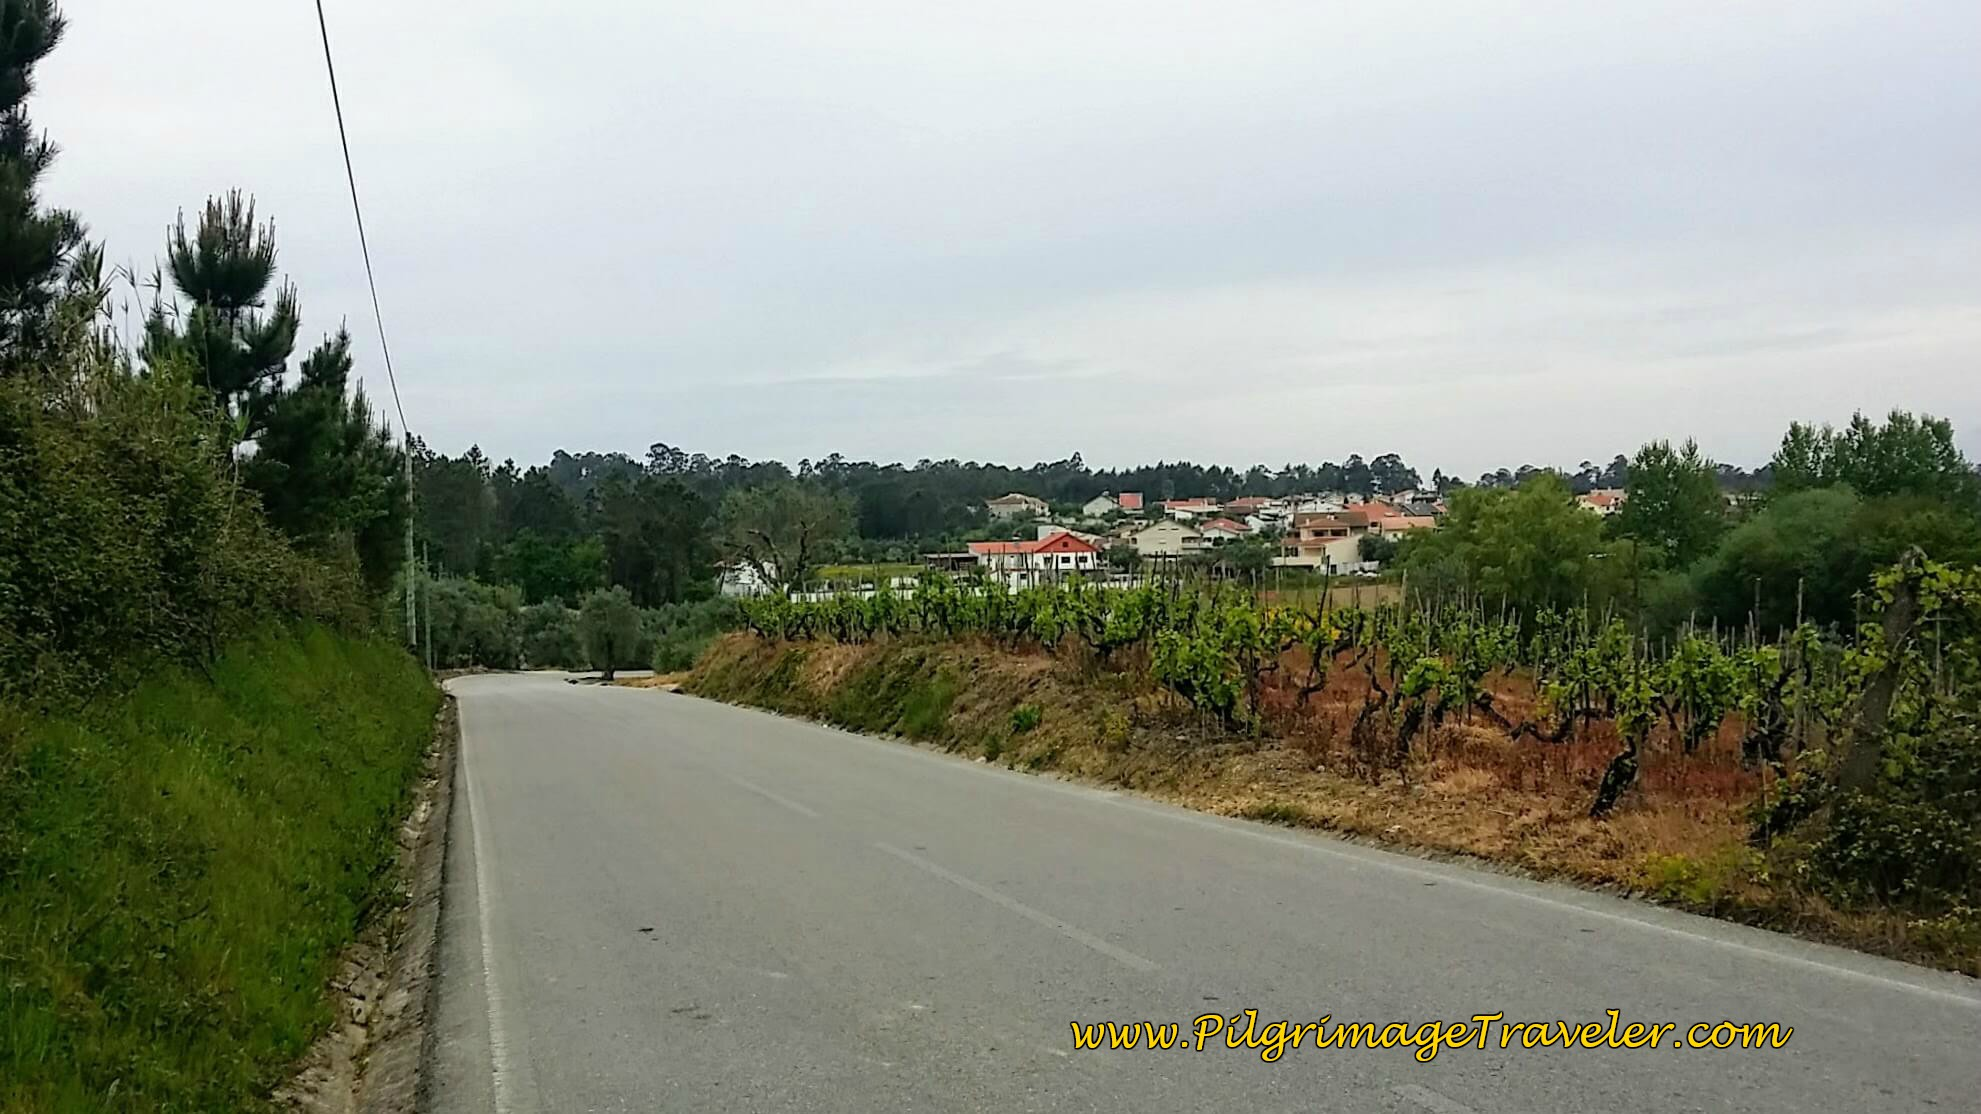 The EM616 Towards Lendlosa, Portugal on the Camino de Santiago